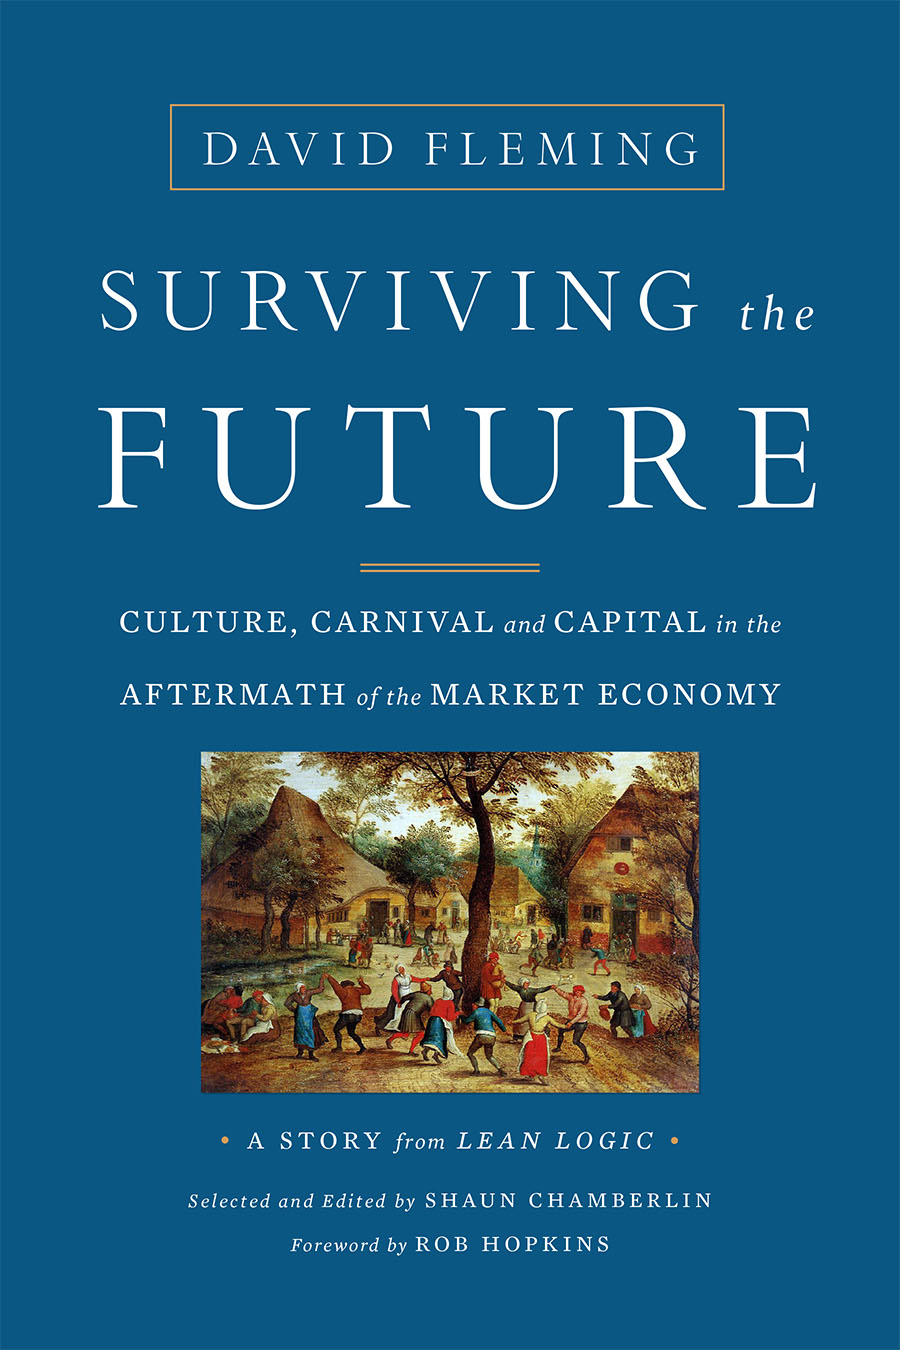 The Surviving the Future cover